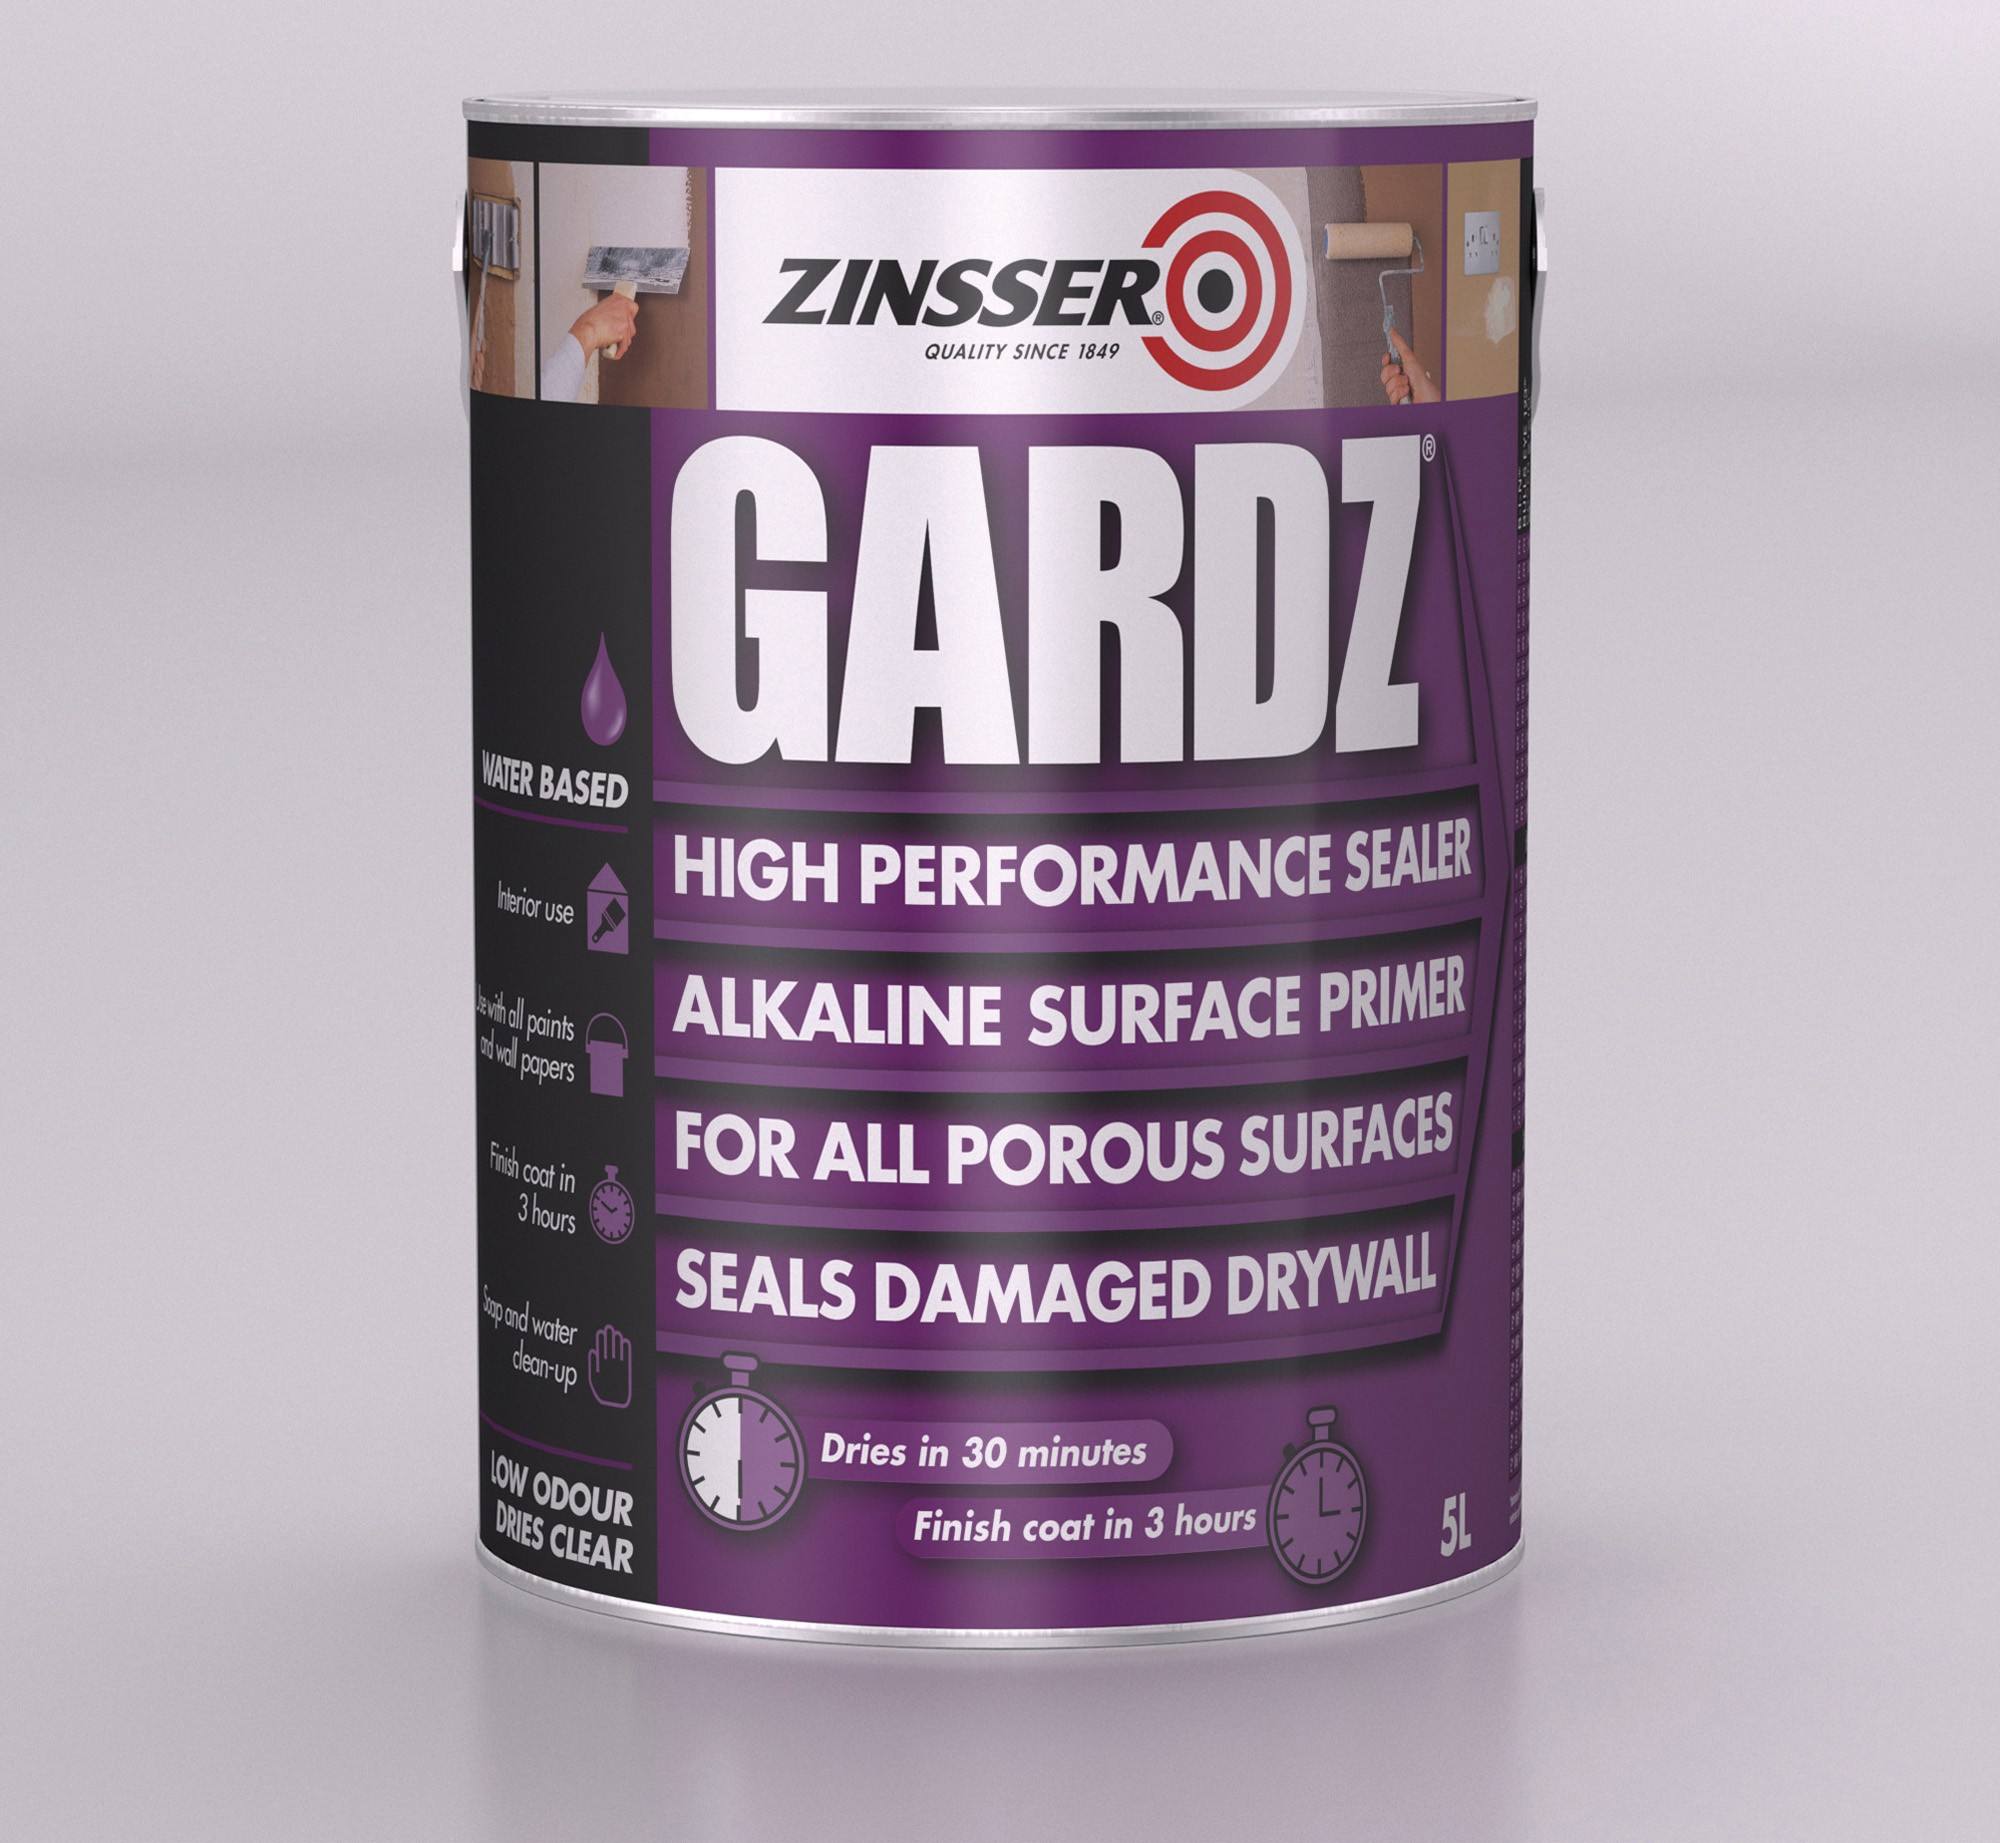 Zinsser Gardz High Performance Sealer Andrews Coatings Ltd